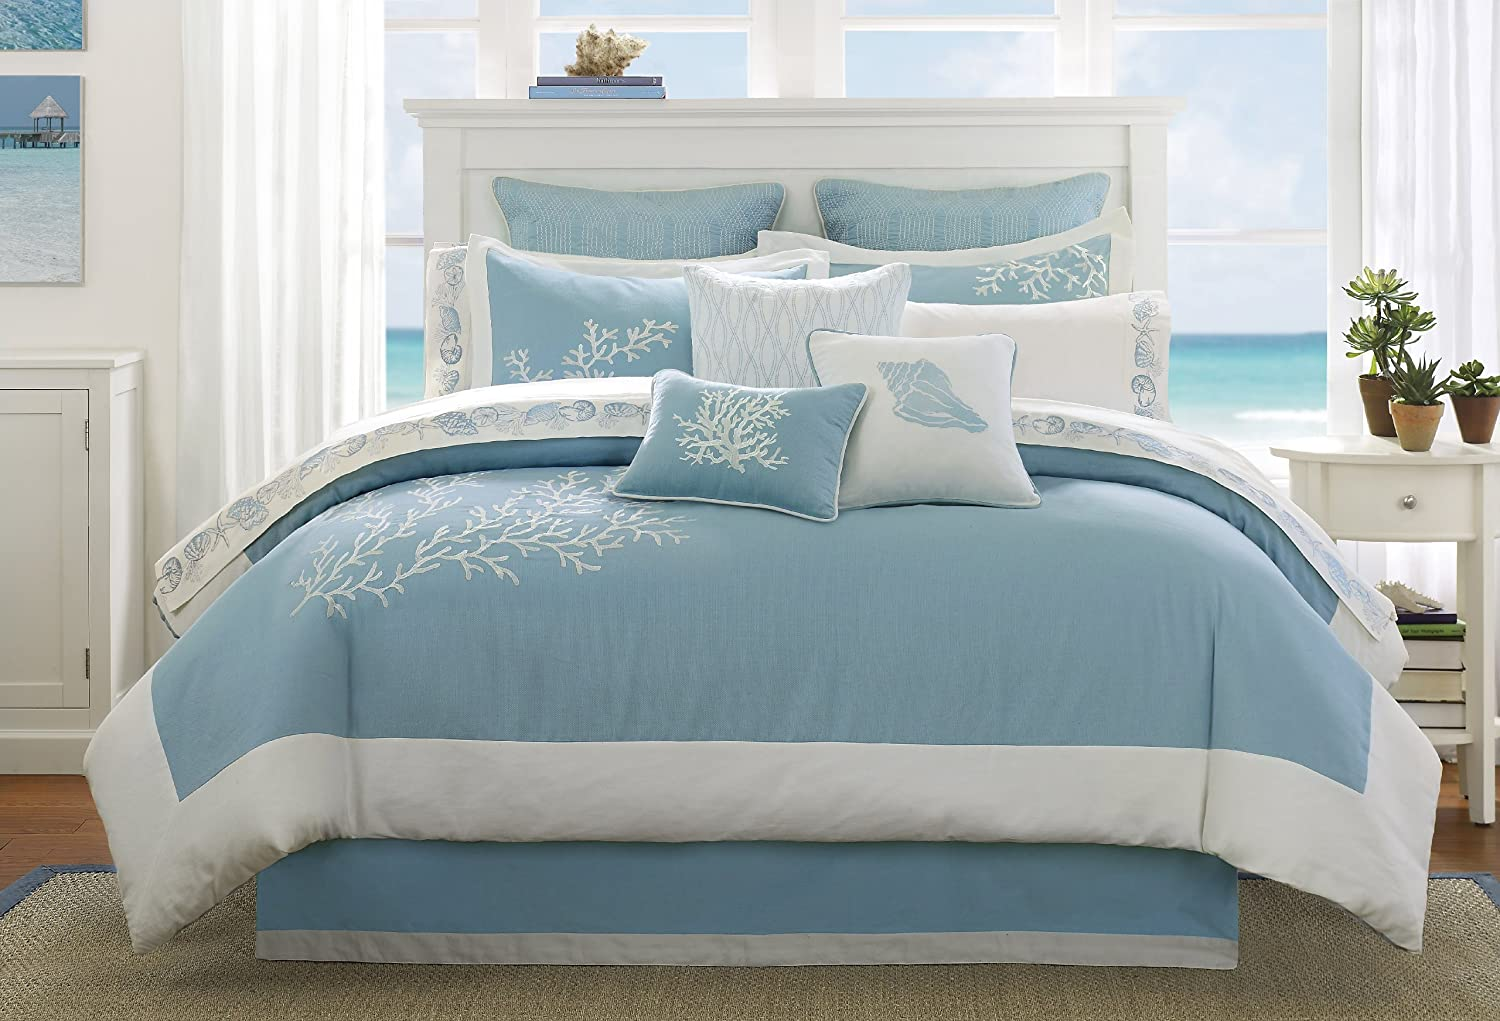 Blue bedspreads and comforters - Coastline Queen Comforter Set